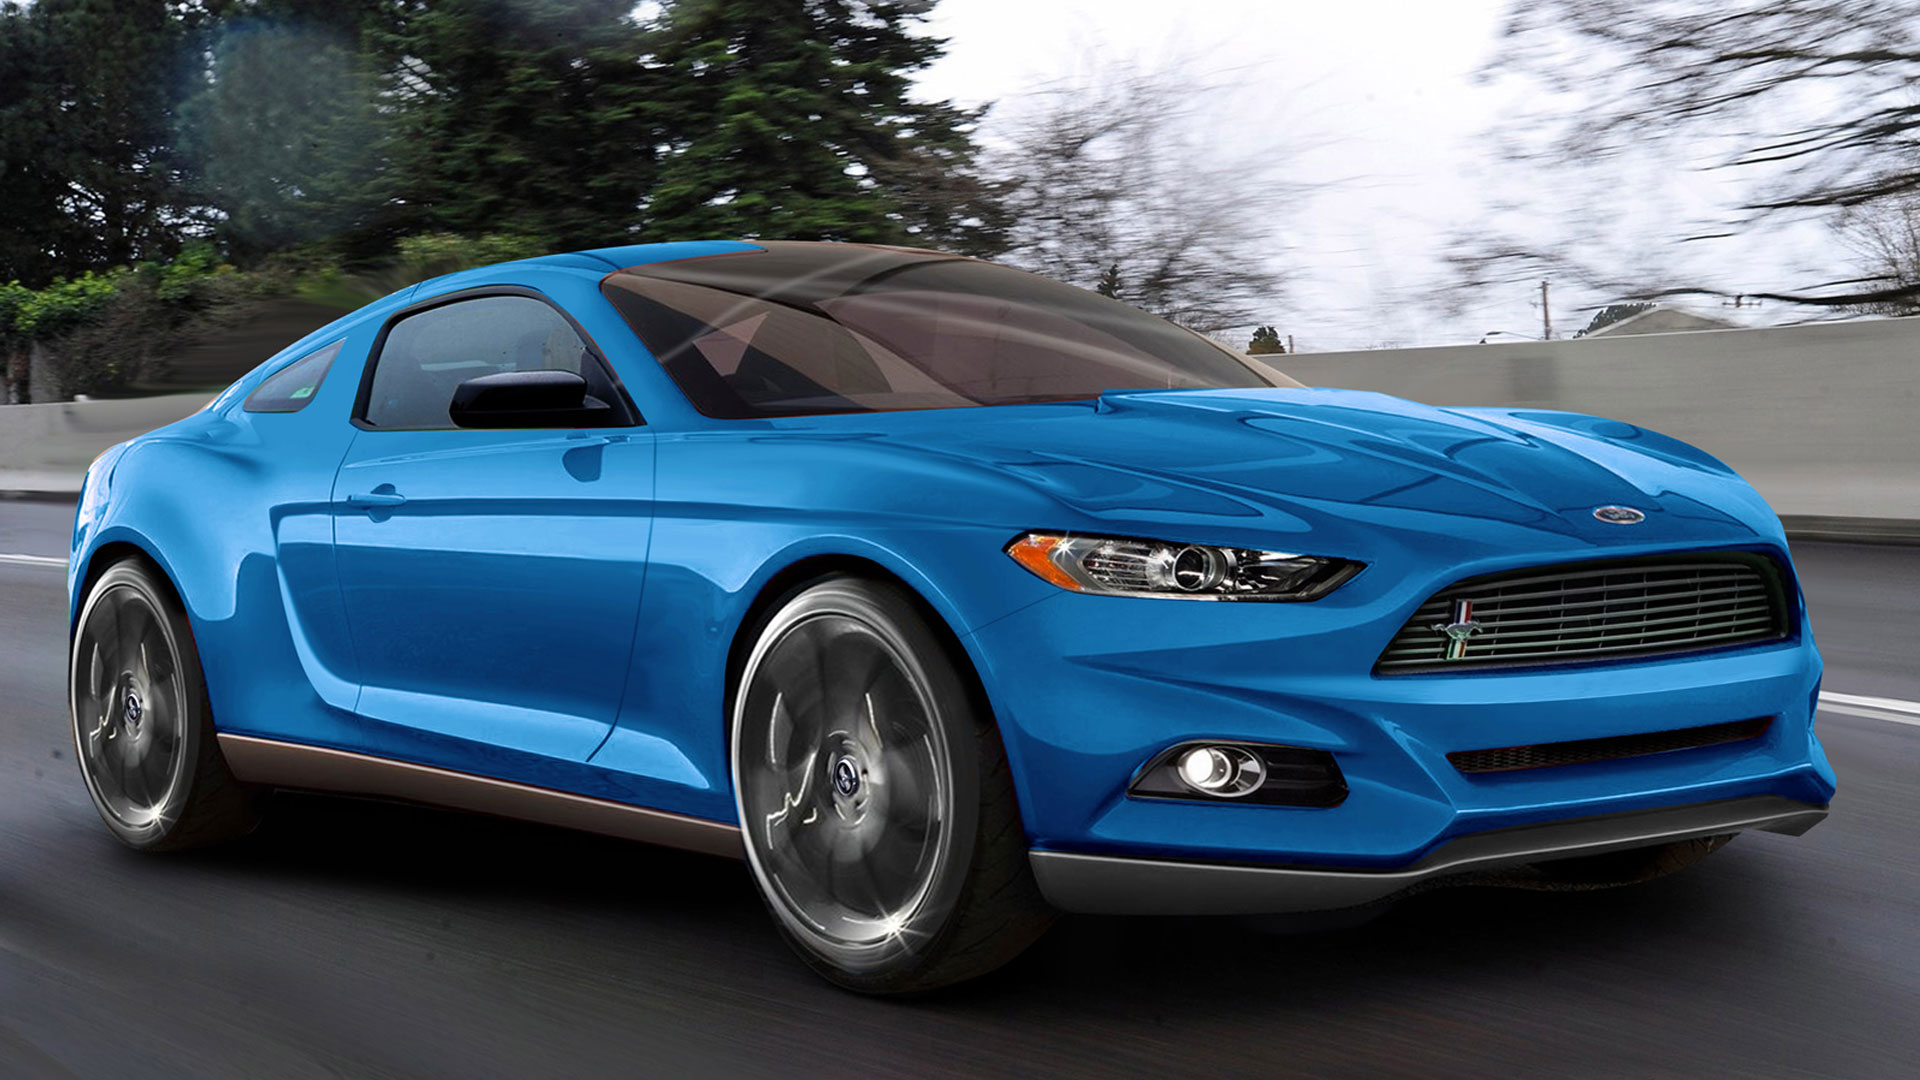 Ford Mustang Cabrio Gt Hd Wallpaper For Desktop Cool Wallpapers 1920x1080